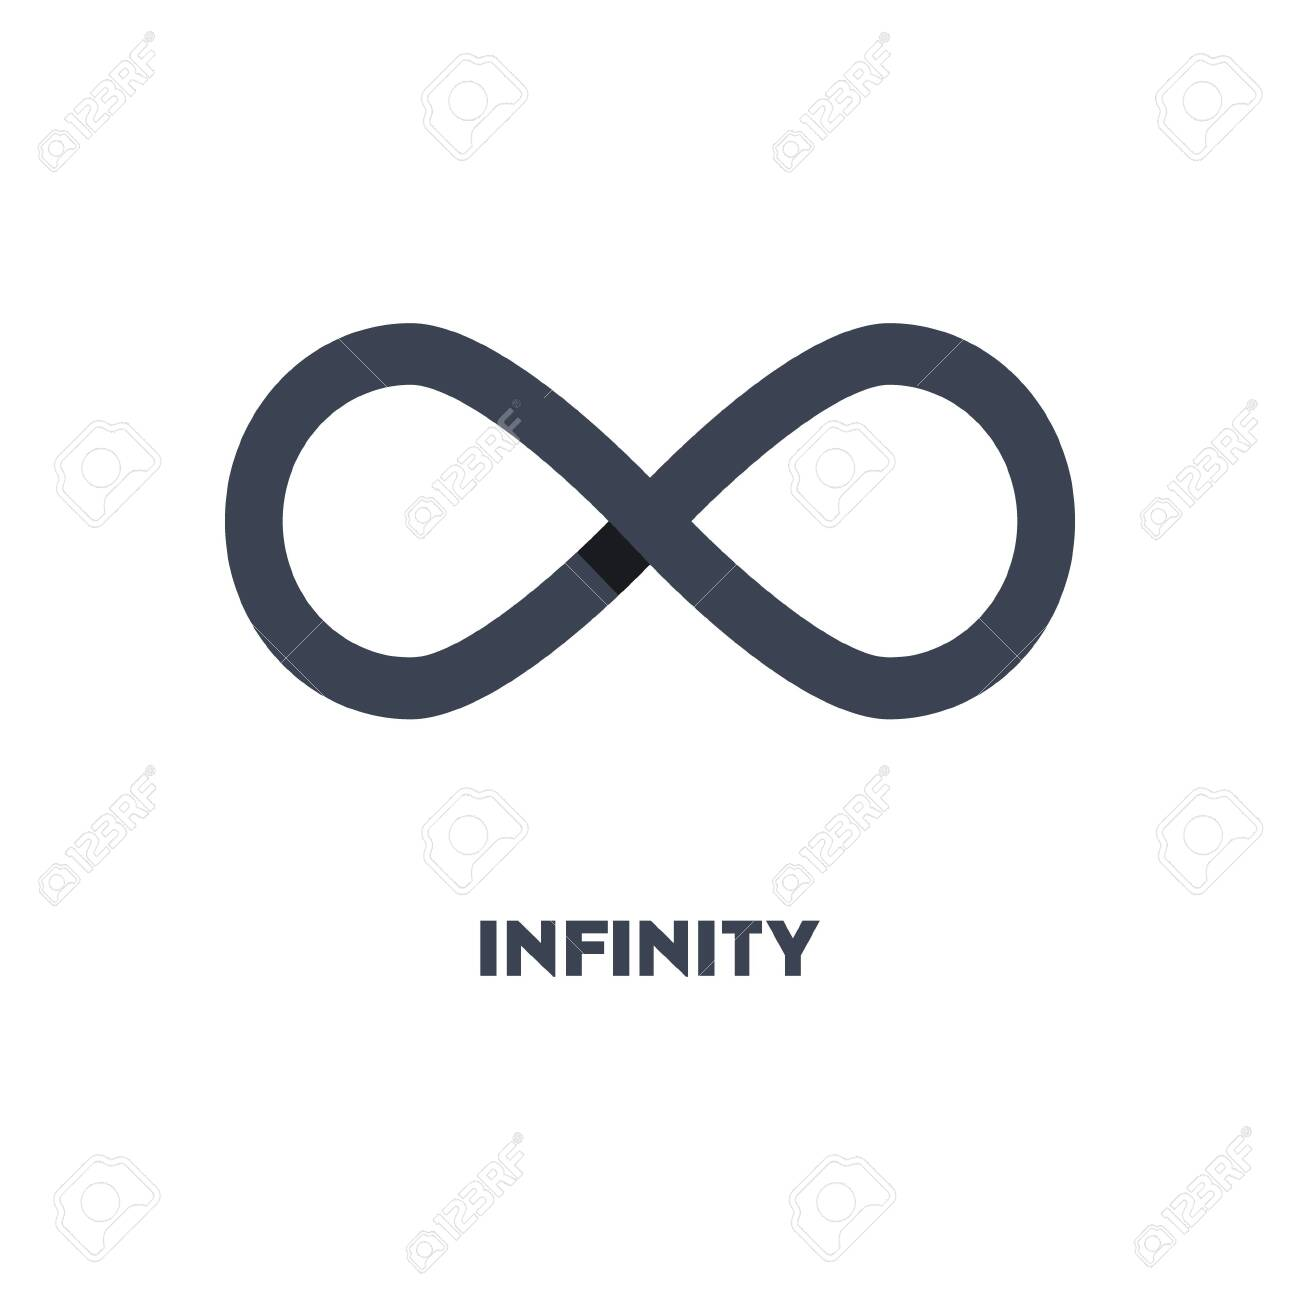 Limitless sign icon. Infinity symbol isolated on white background - 150405151